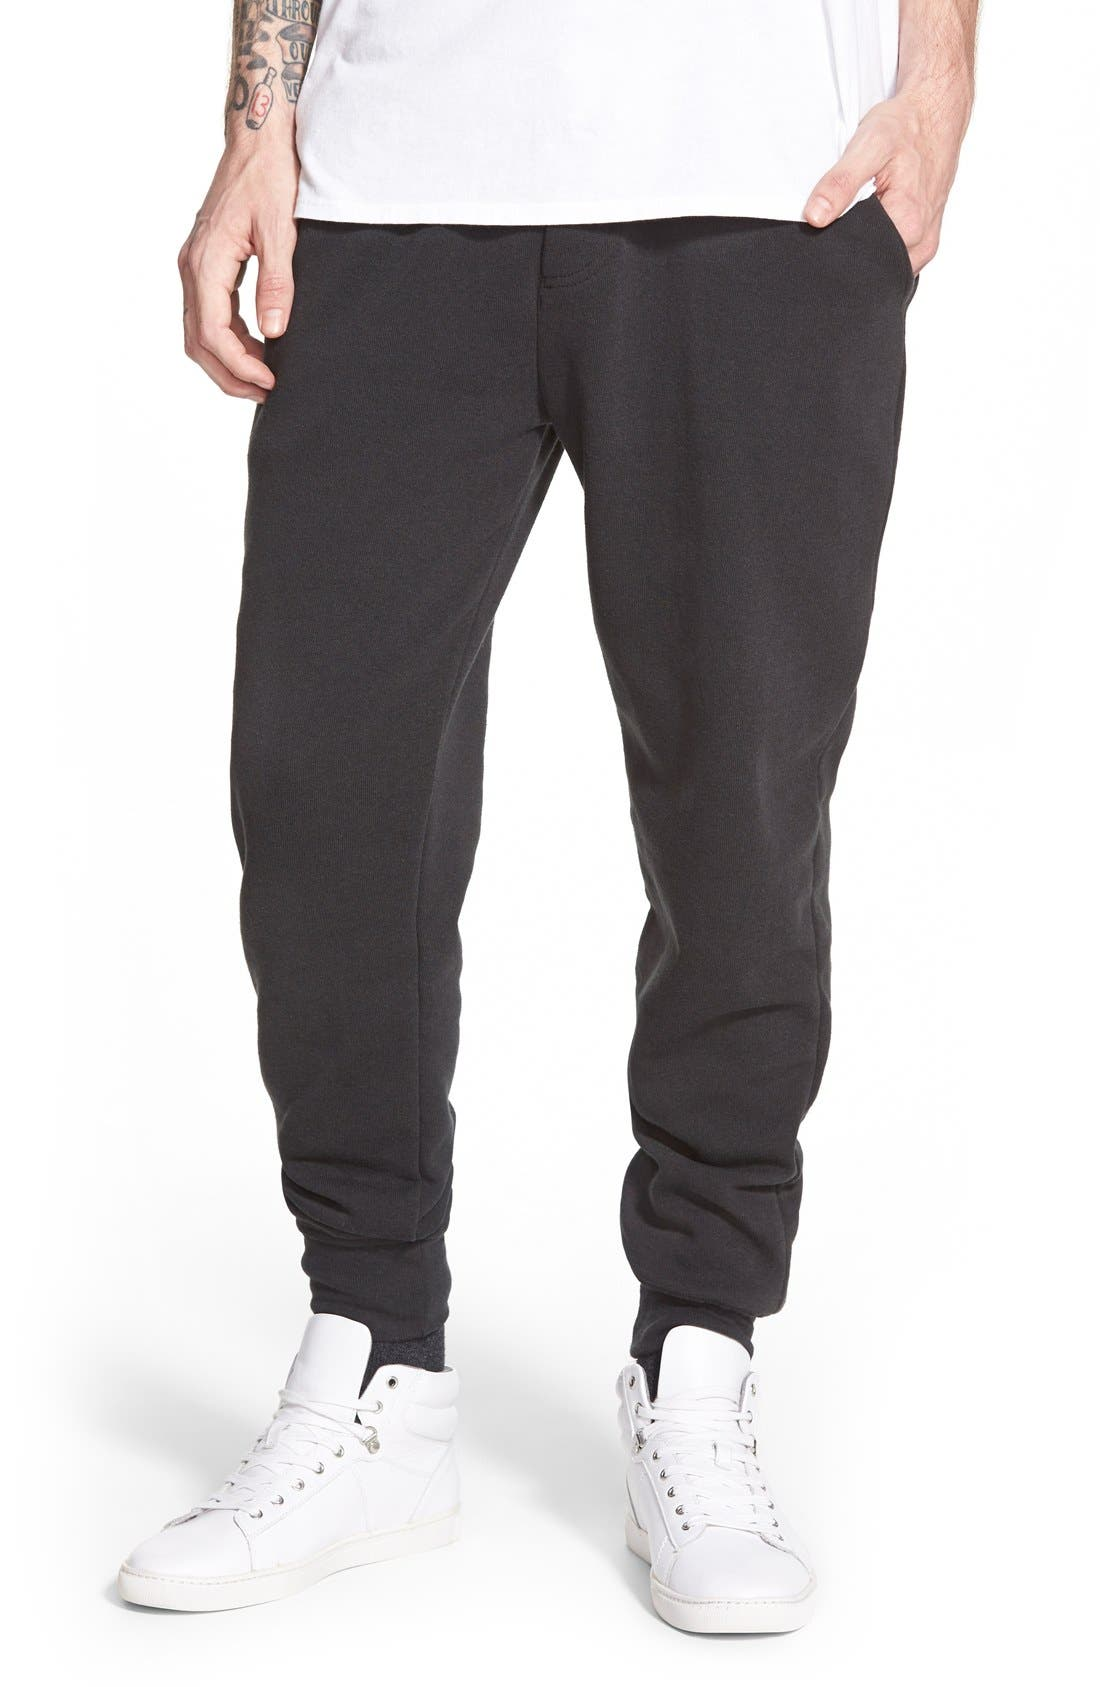 'Dodgeball' Eco Fleece Sweatpants,                         Main,                         color,